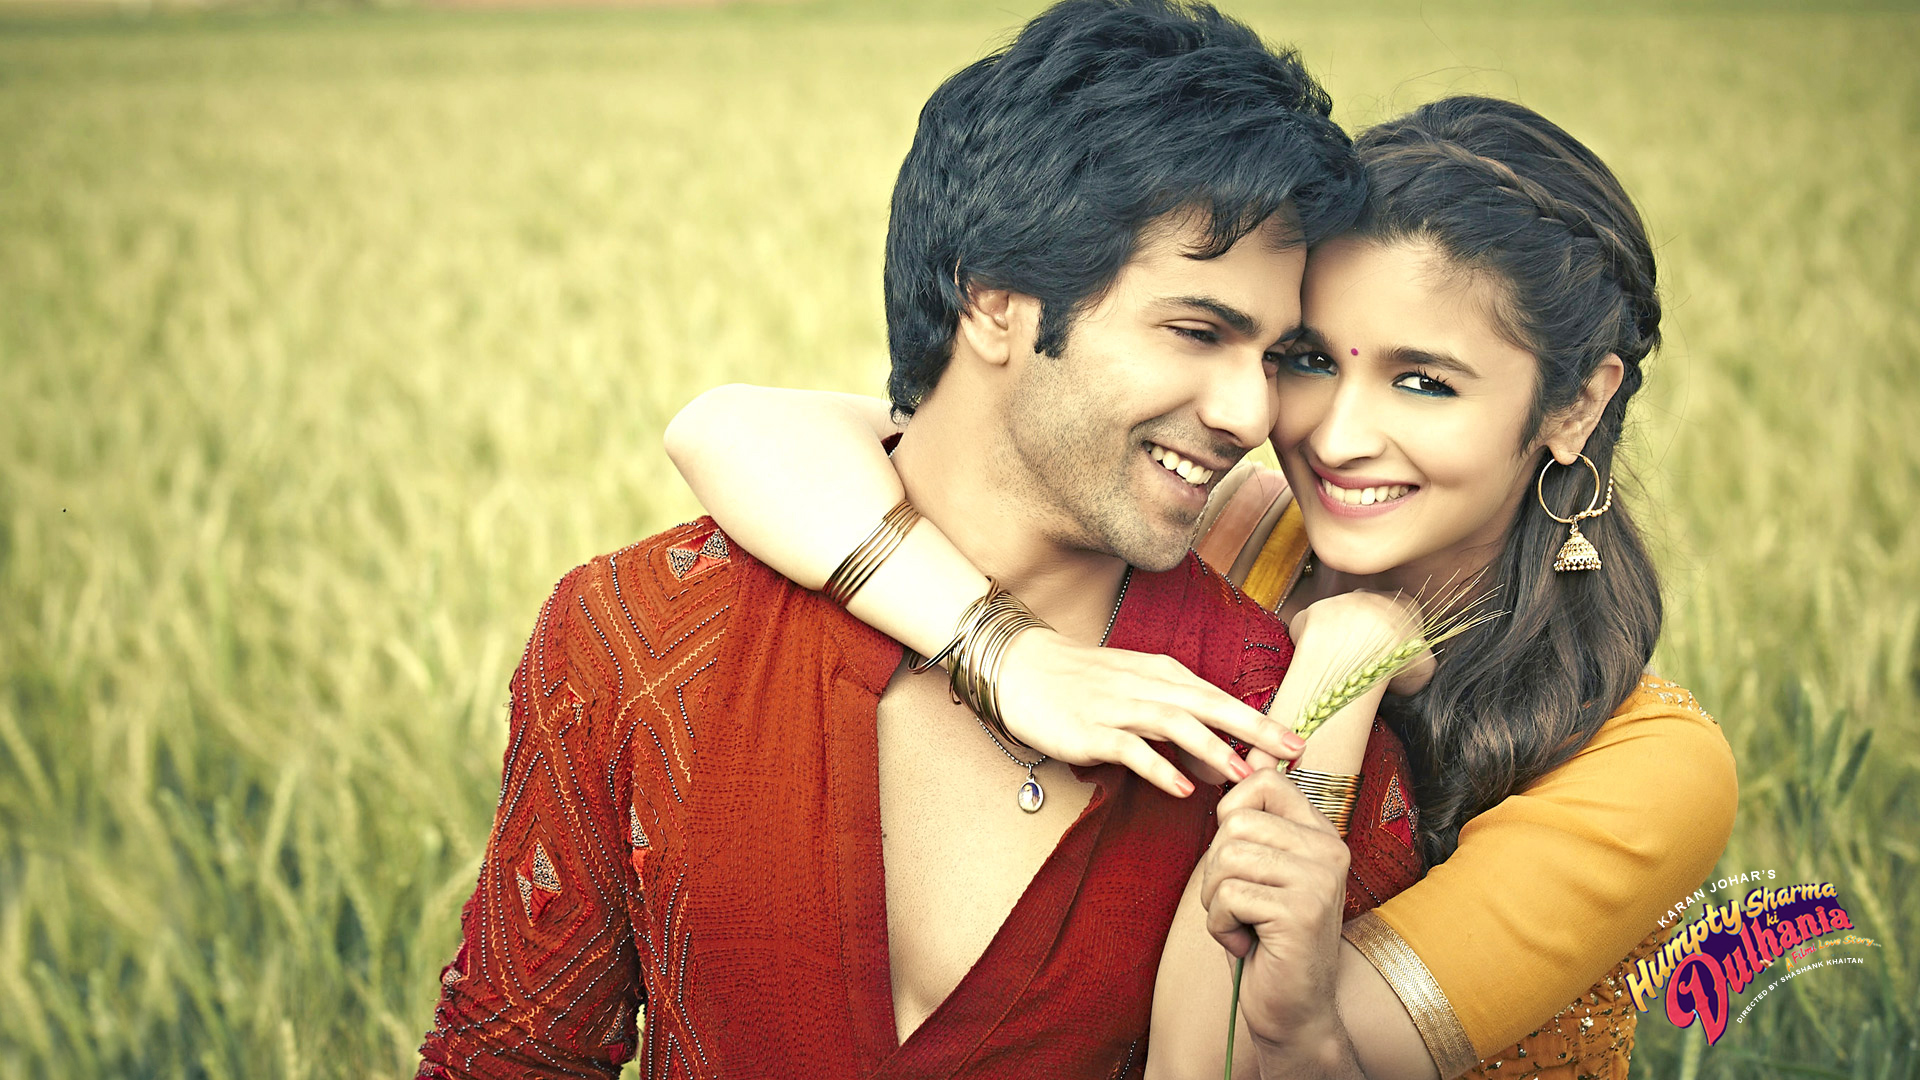 humpty sharma ki dulhania hq movie wallpapers | humpty sharma ki